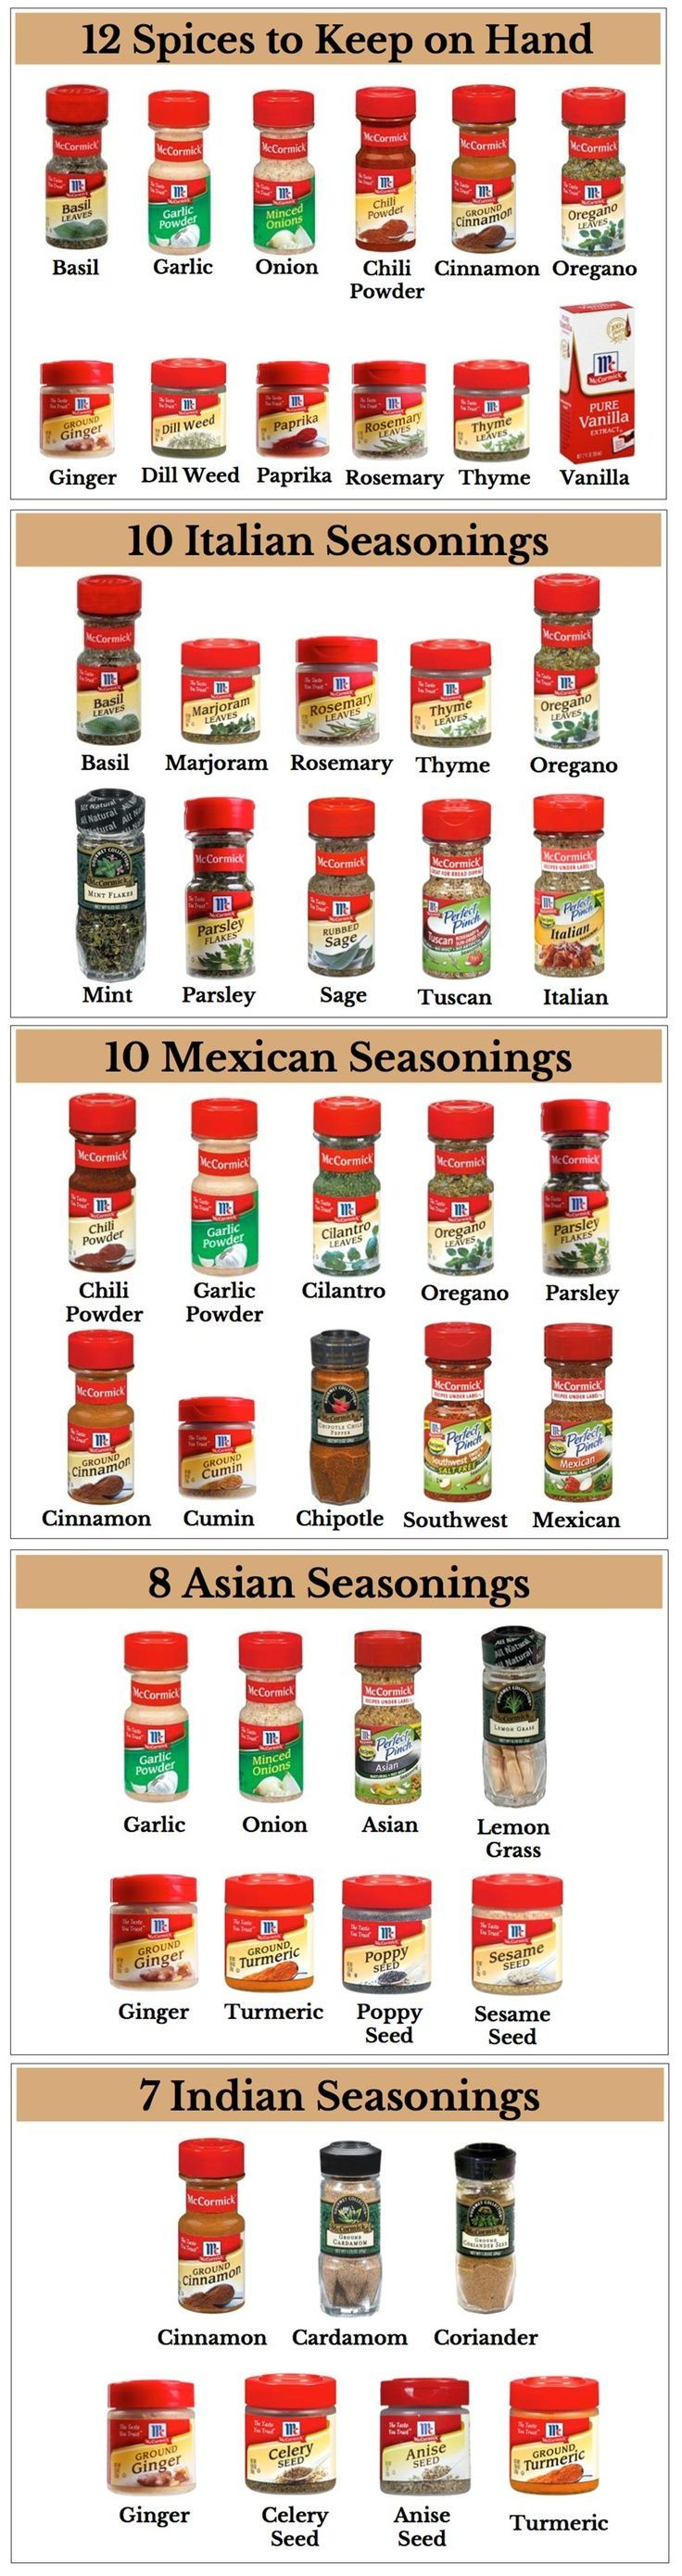 great suggestion of spices to keep on hand and what spices to put together to create certain ethnic flavors